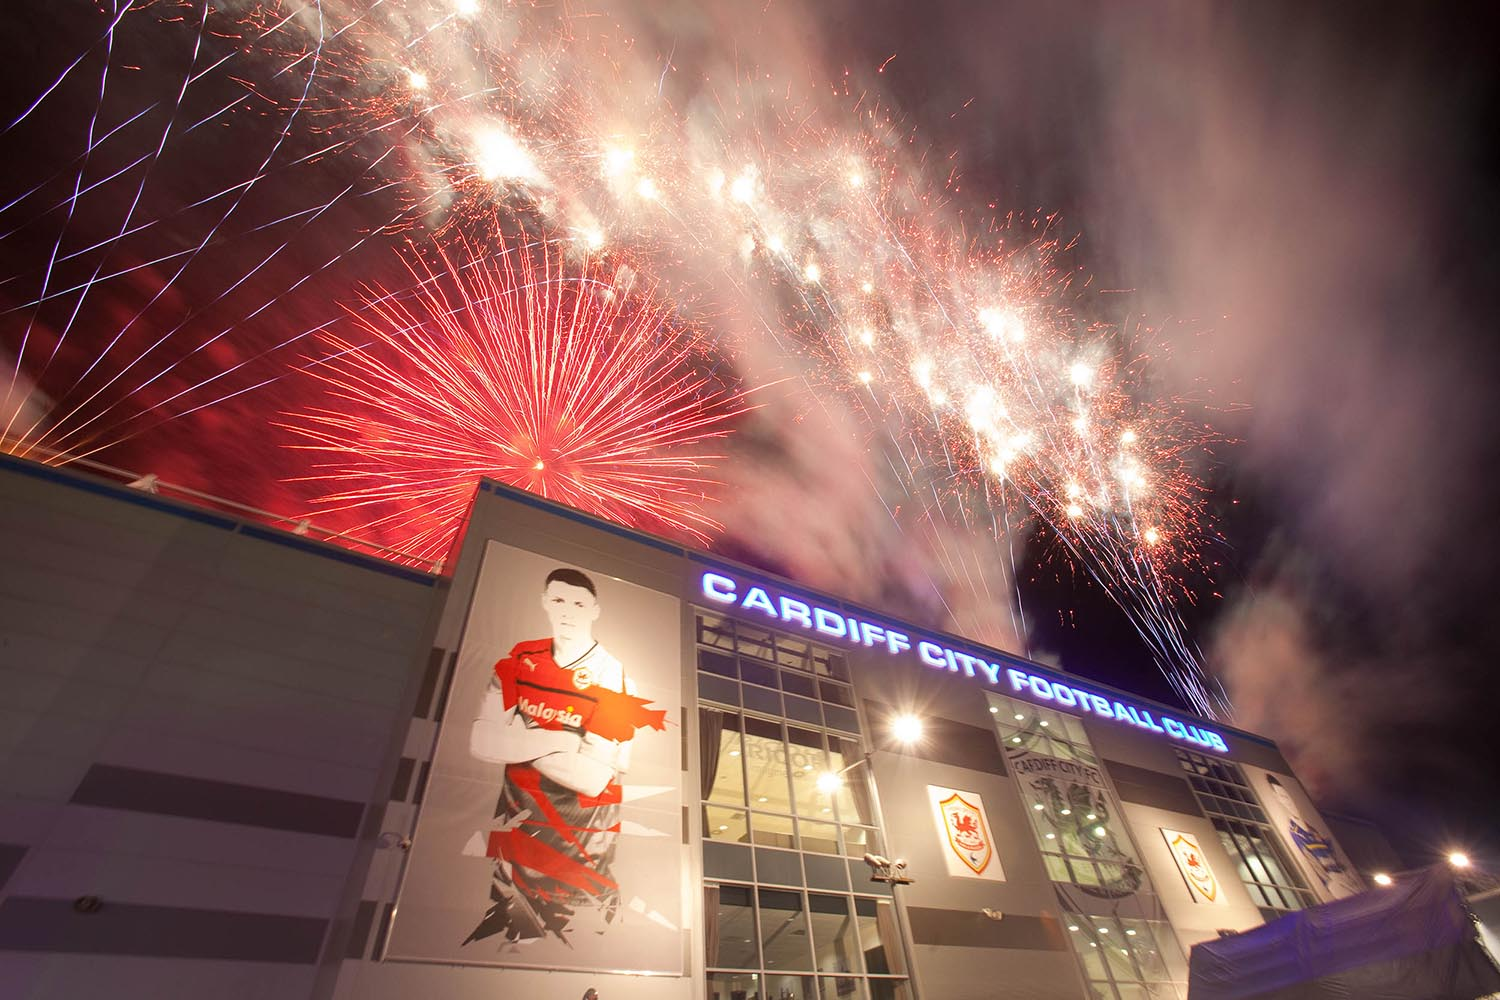 Fireworks at Cardiff City Stadium